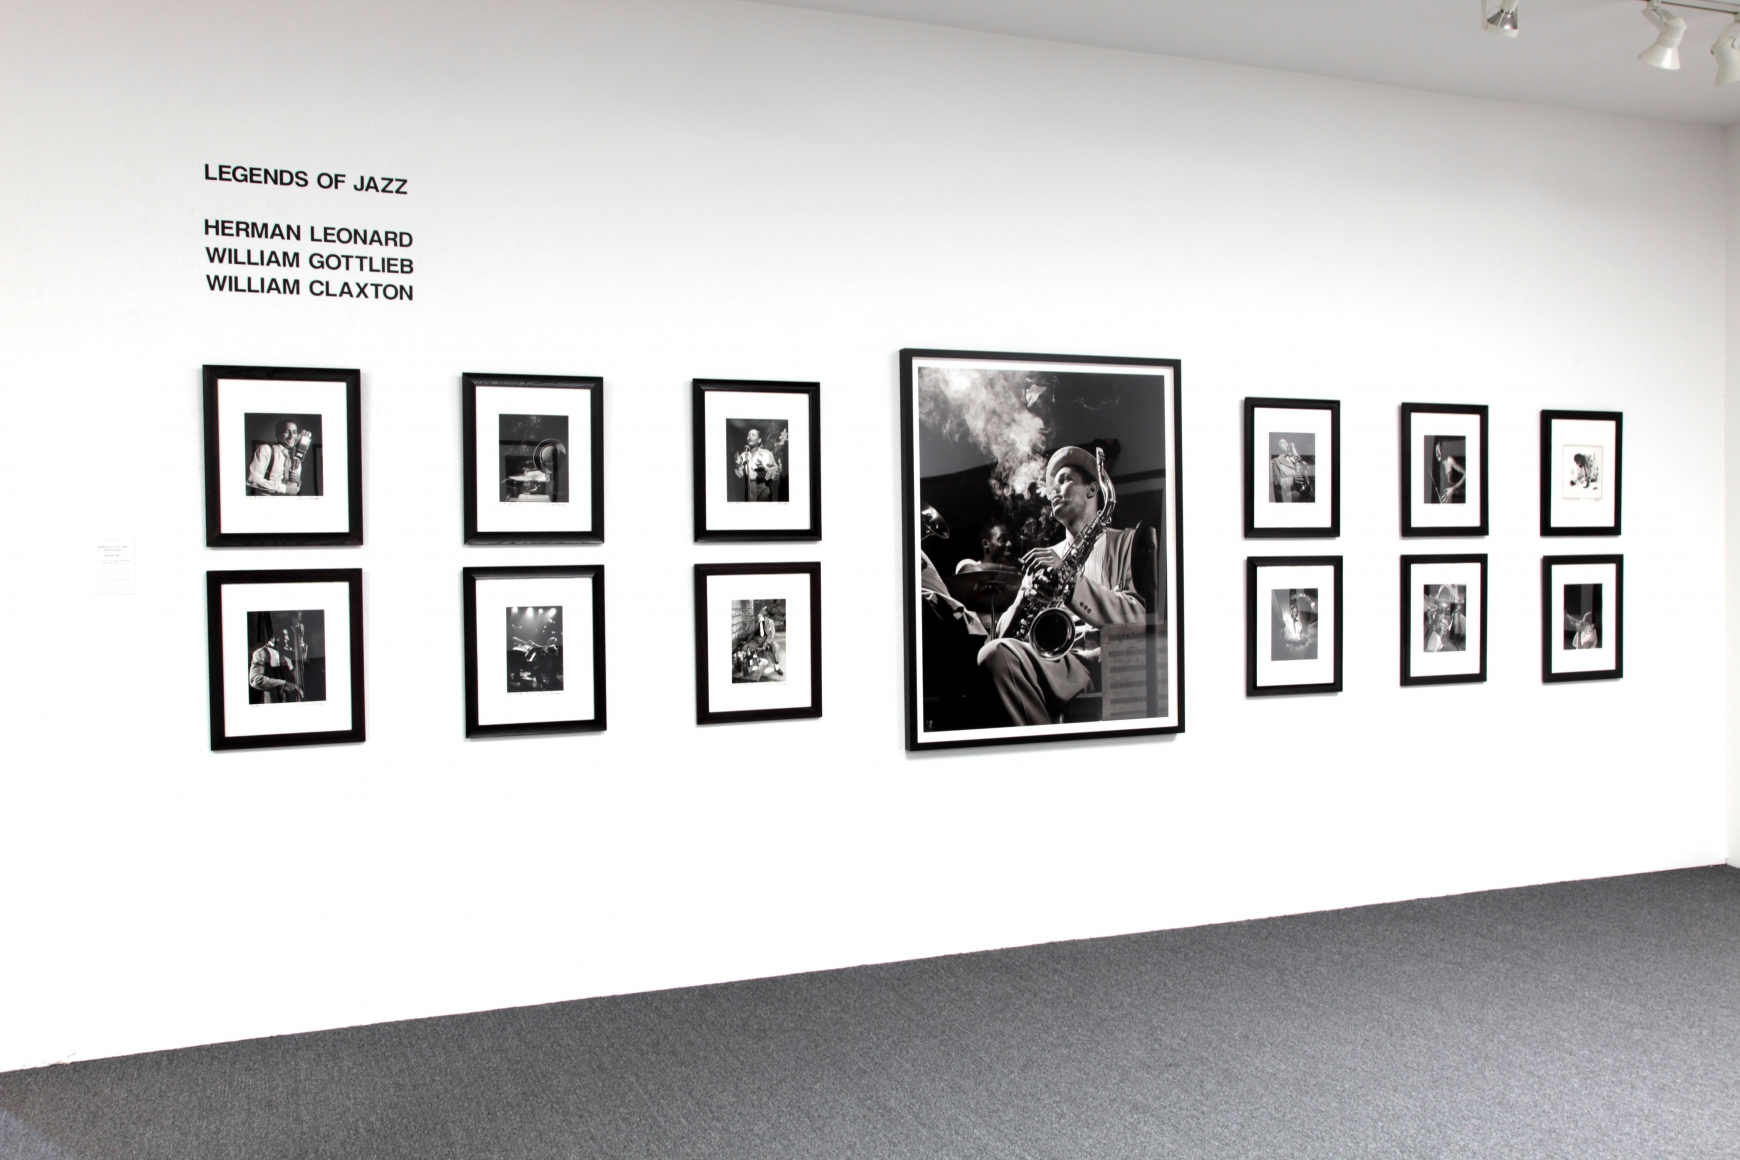 Photography Exhibition Legends Of Jazz Photography Exhibitions Fahey Klein